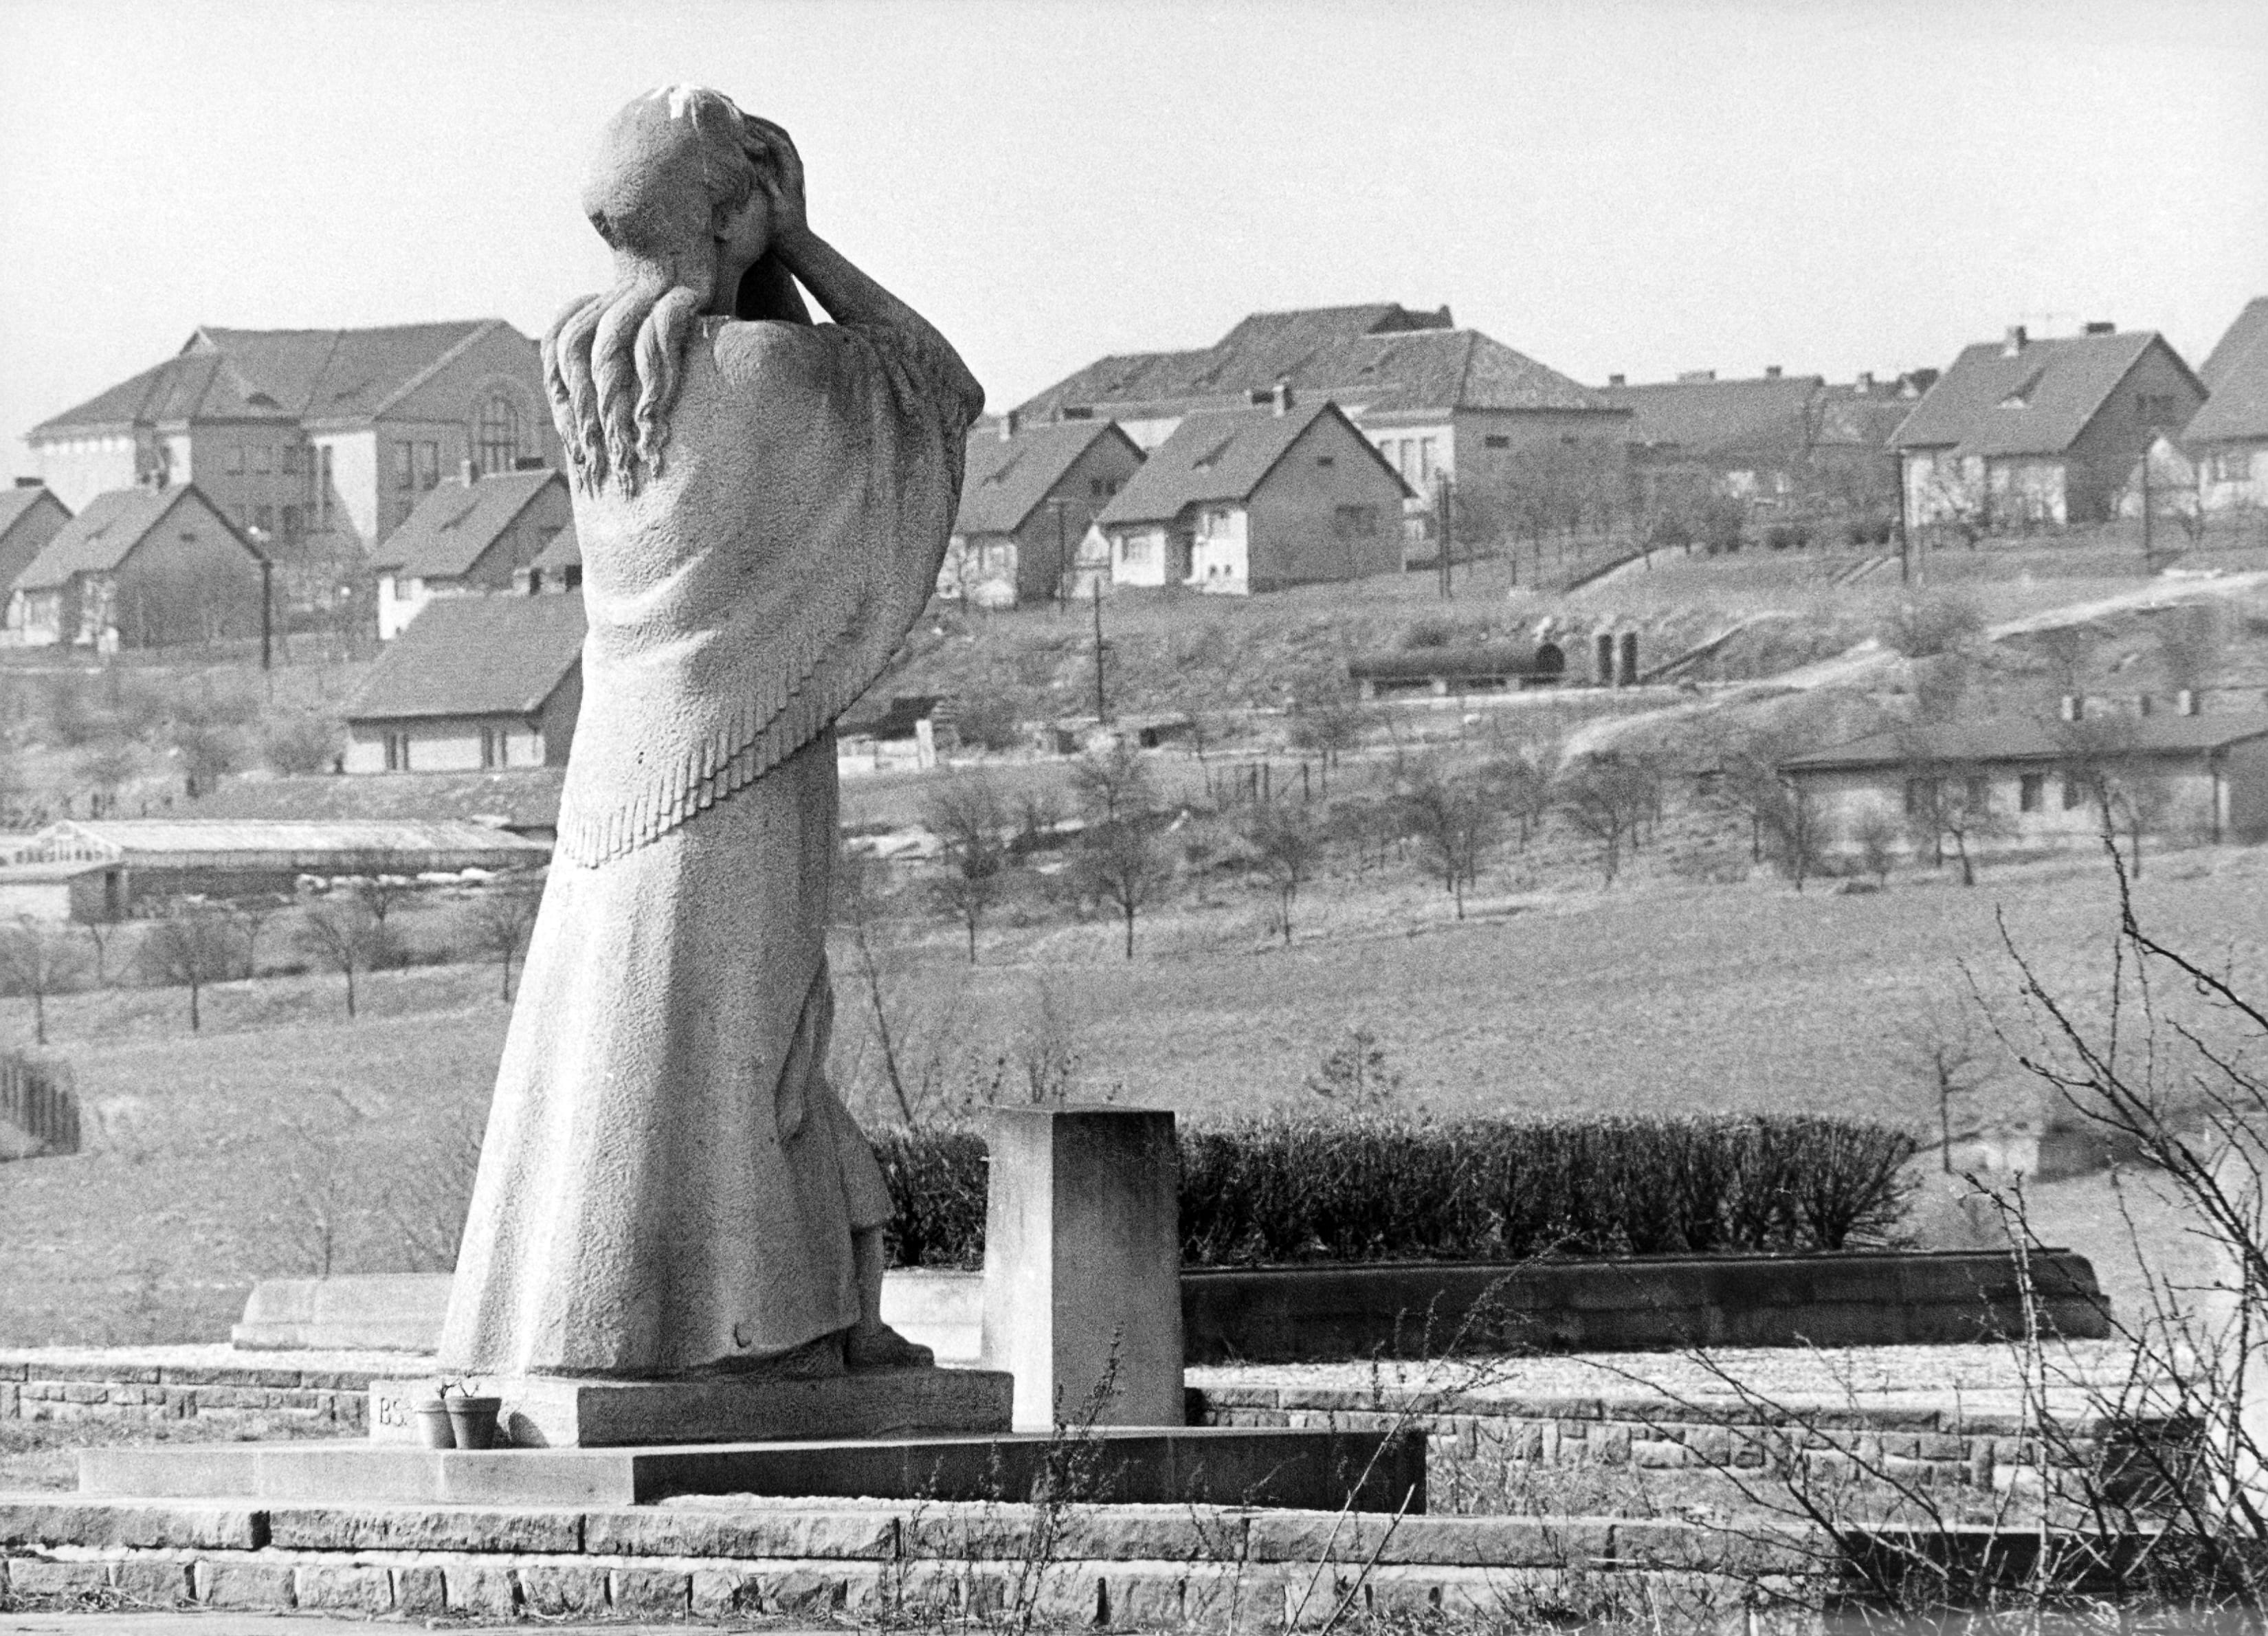 In the background is nove (new) Lidice on May 15, 1967, built after the war. In the foreground is the statue of a woman protecting her face from flames on the site of the village school, burned by Nazi troops. (AP Photo)